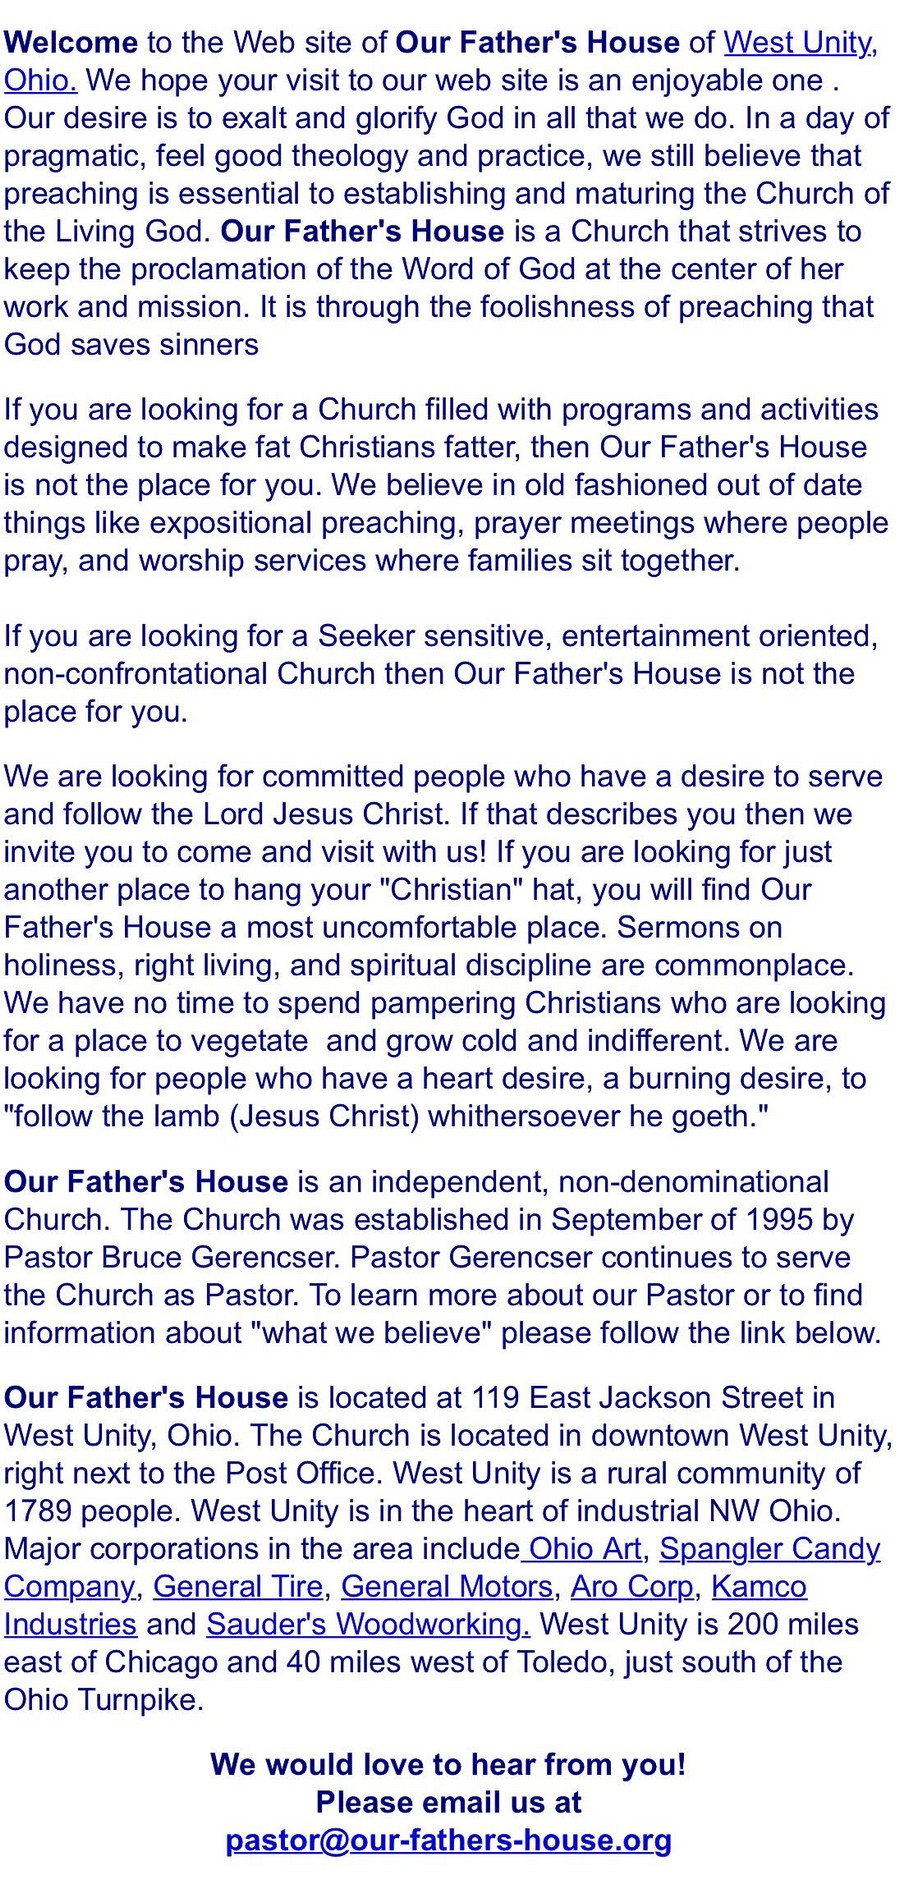 our-fathers-house-west-unity-website